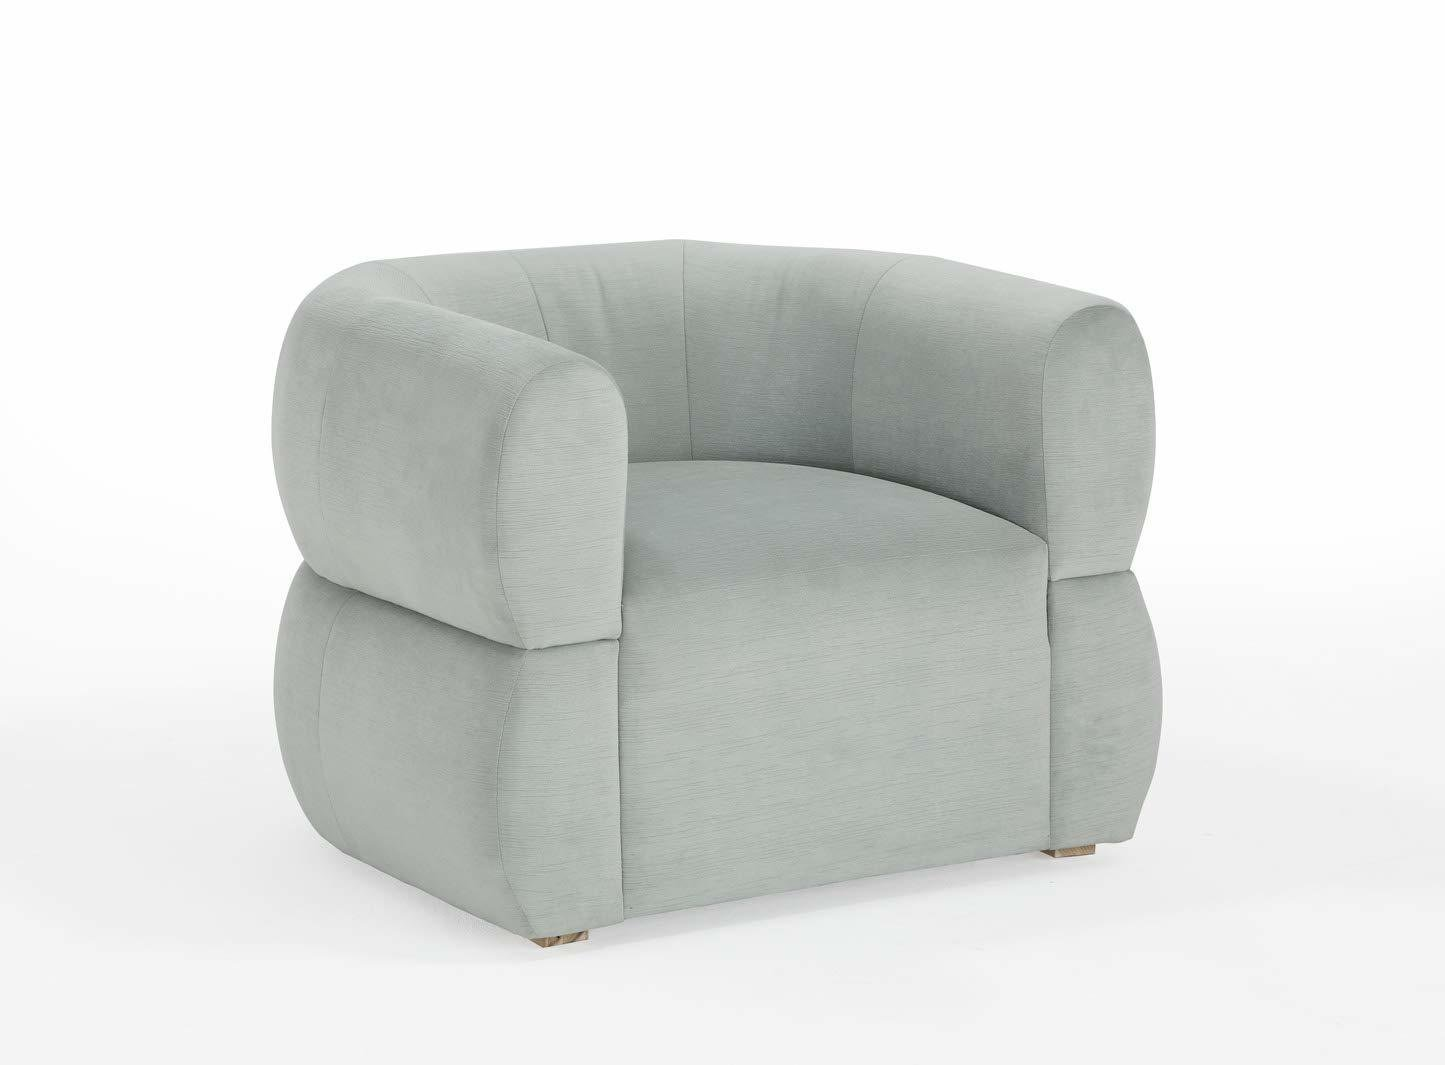 Sleeper Chairs Amazon Now House By Jonathan Adler Cloud Chair Club Empire Ice By Amazon